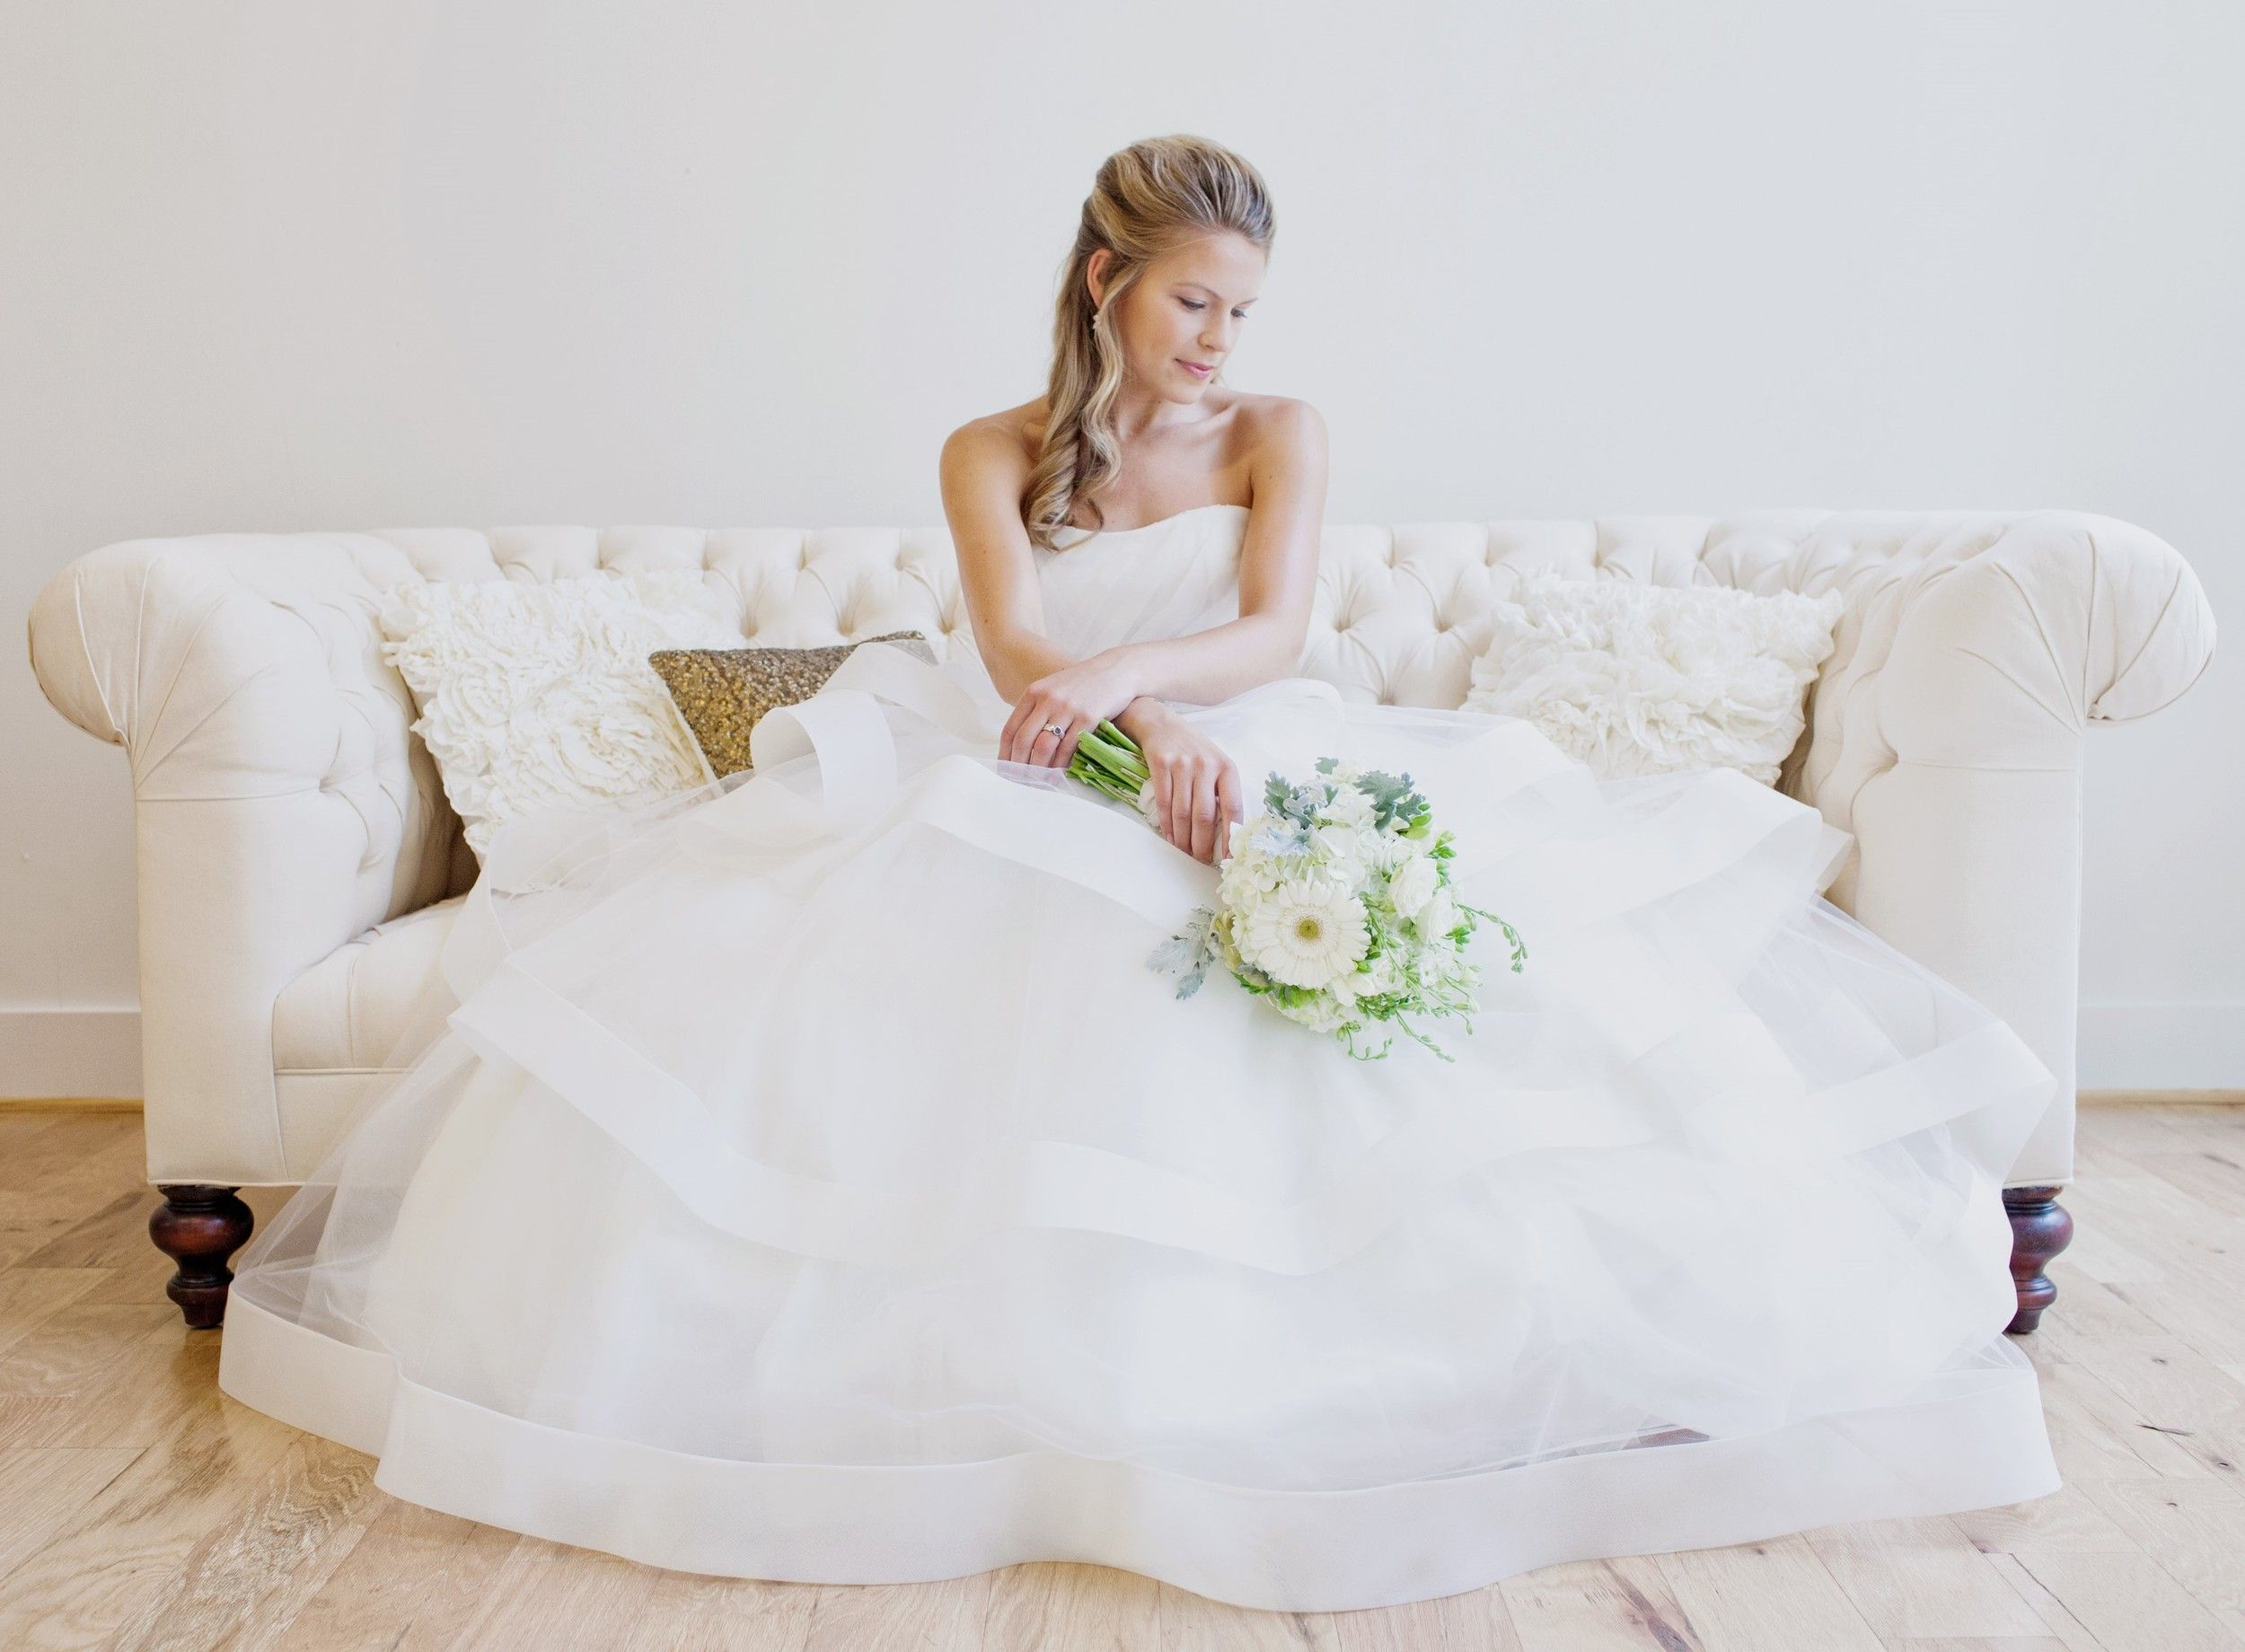 c88d4d8c6e80 Annalise Bridal | Richmond, Virginia | A full-service bridal boutique that  offers a stunning selection of couture bridal gowns exclusive to the  Central ...